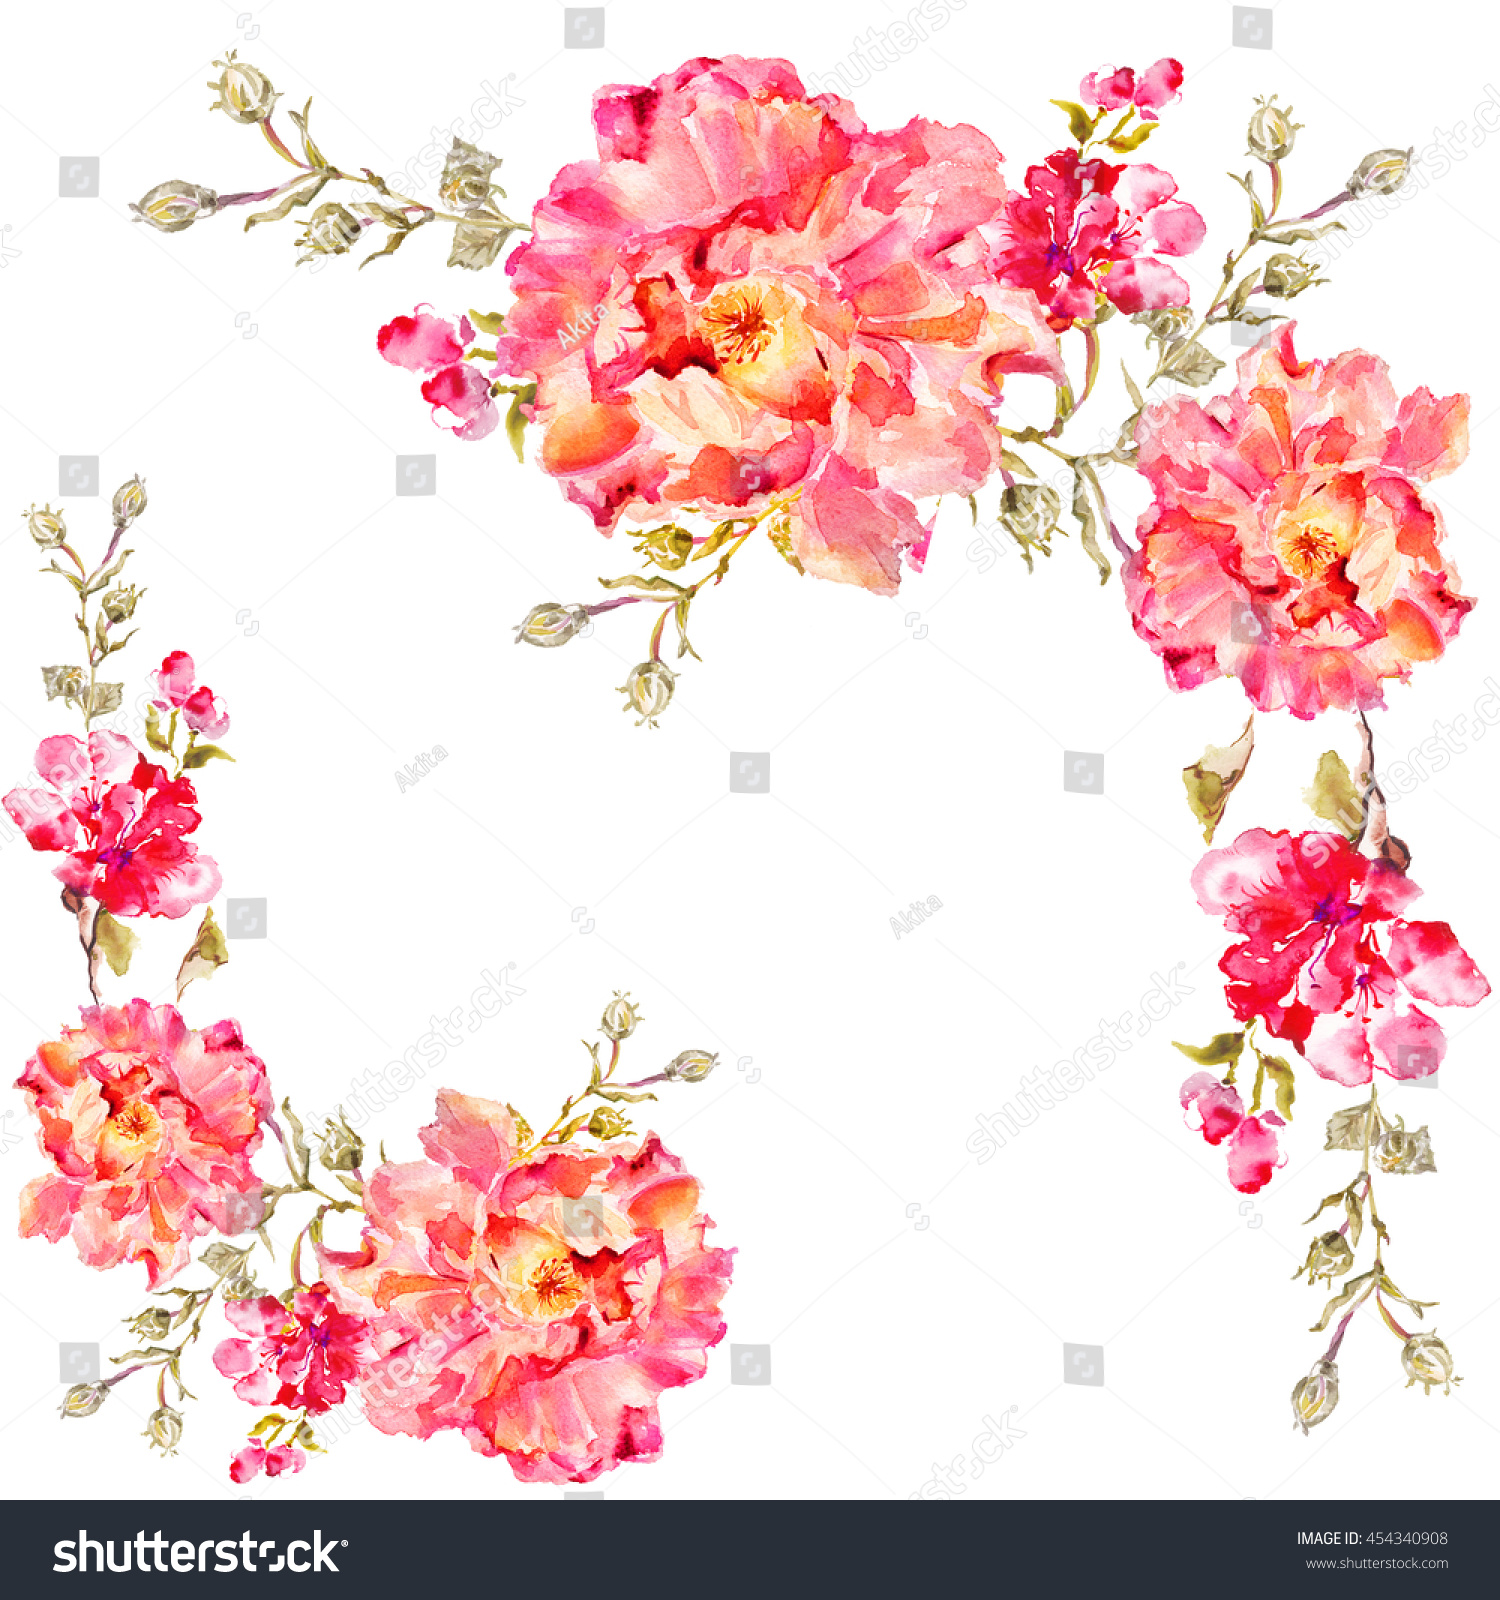 Flower Watercolor Background Floral Illustration Bouquet Stock